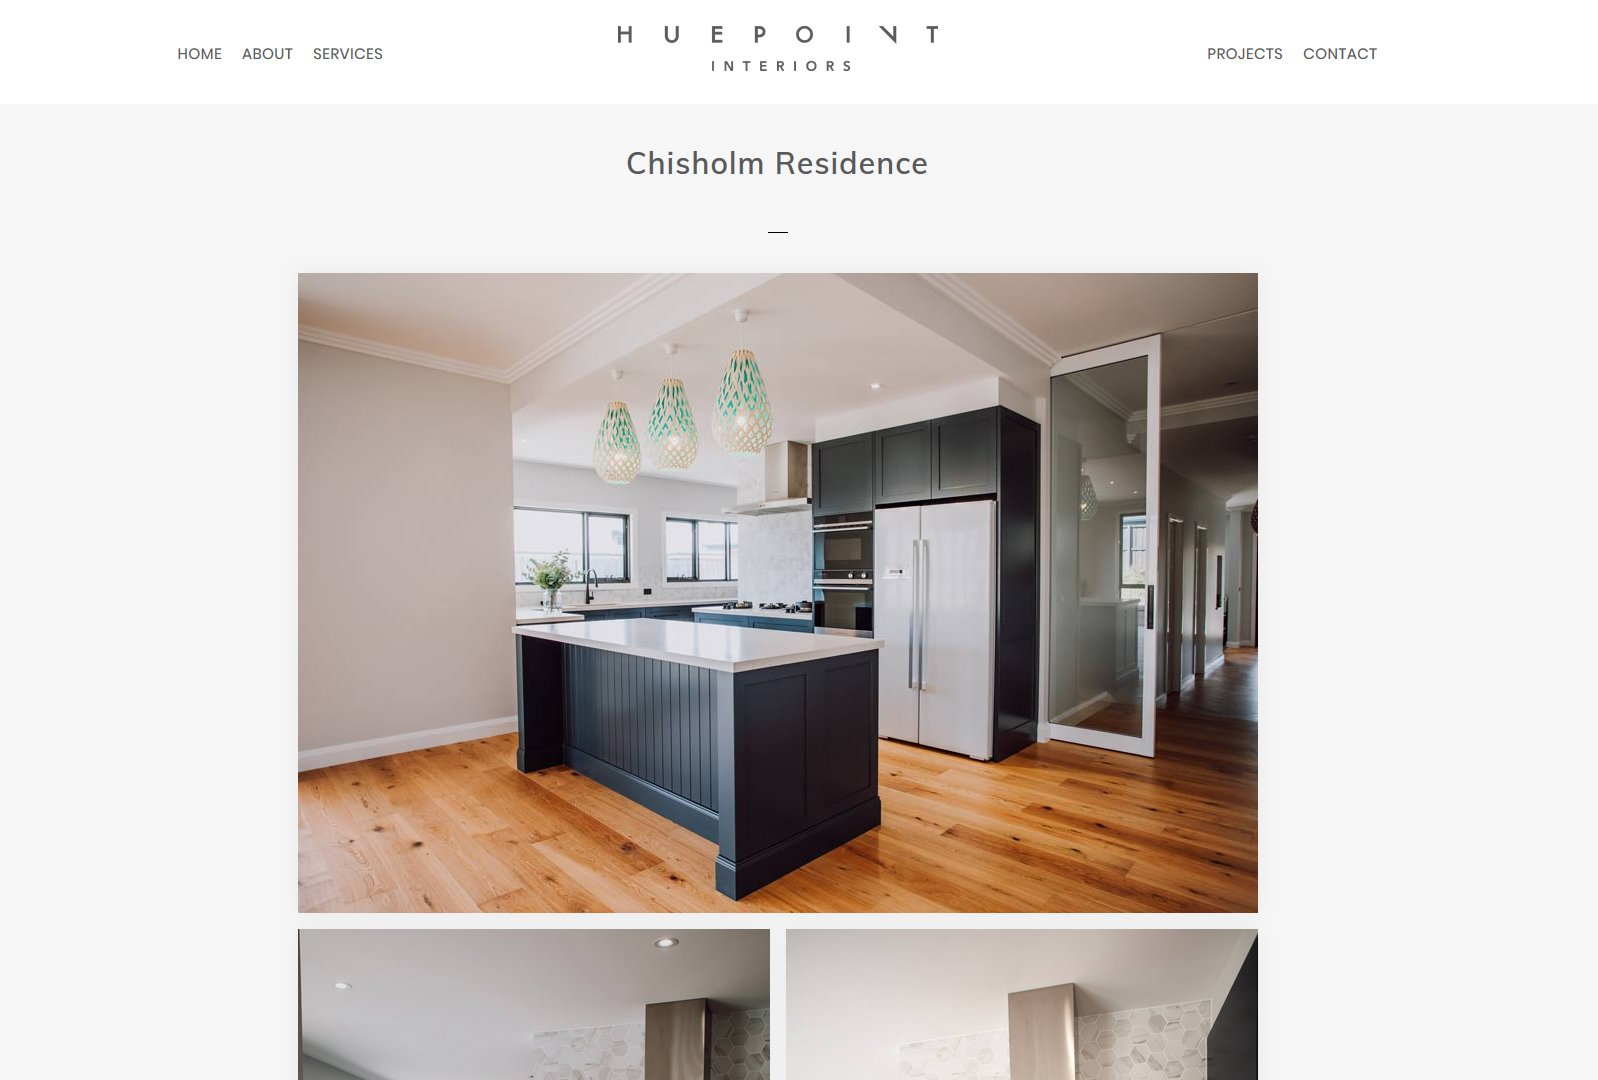 website design fo interior designer newcastle